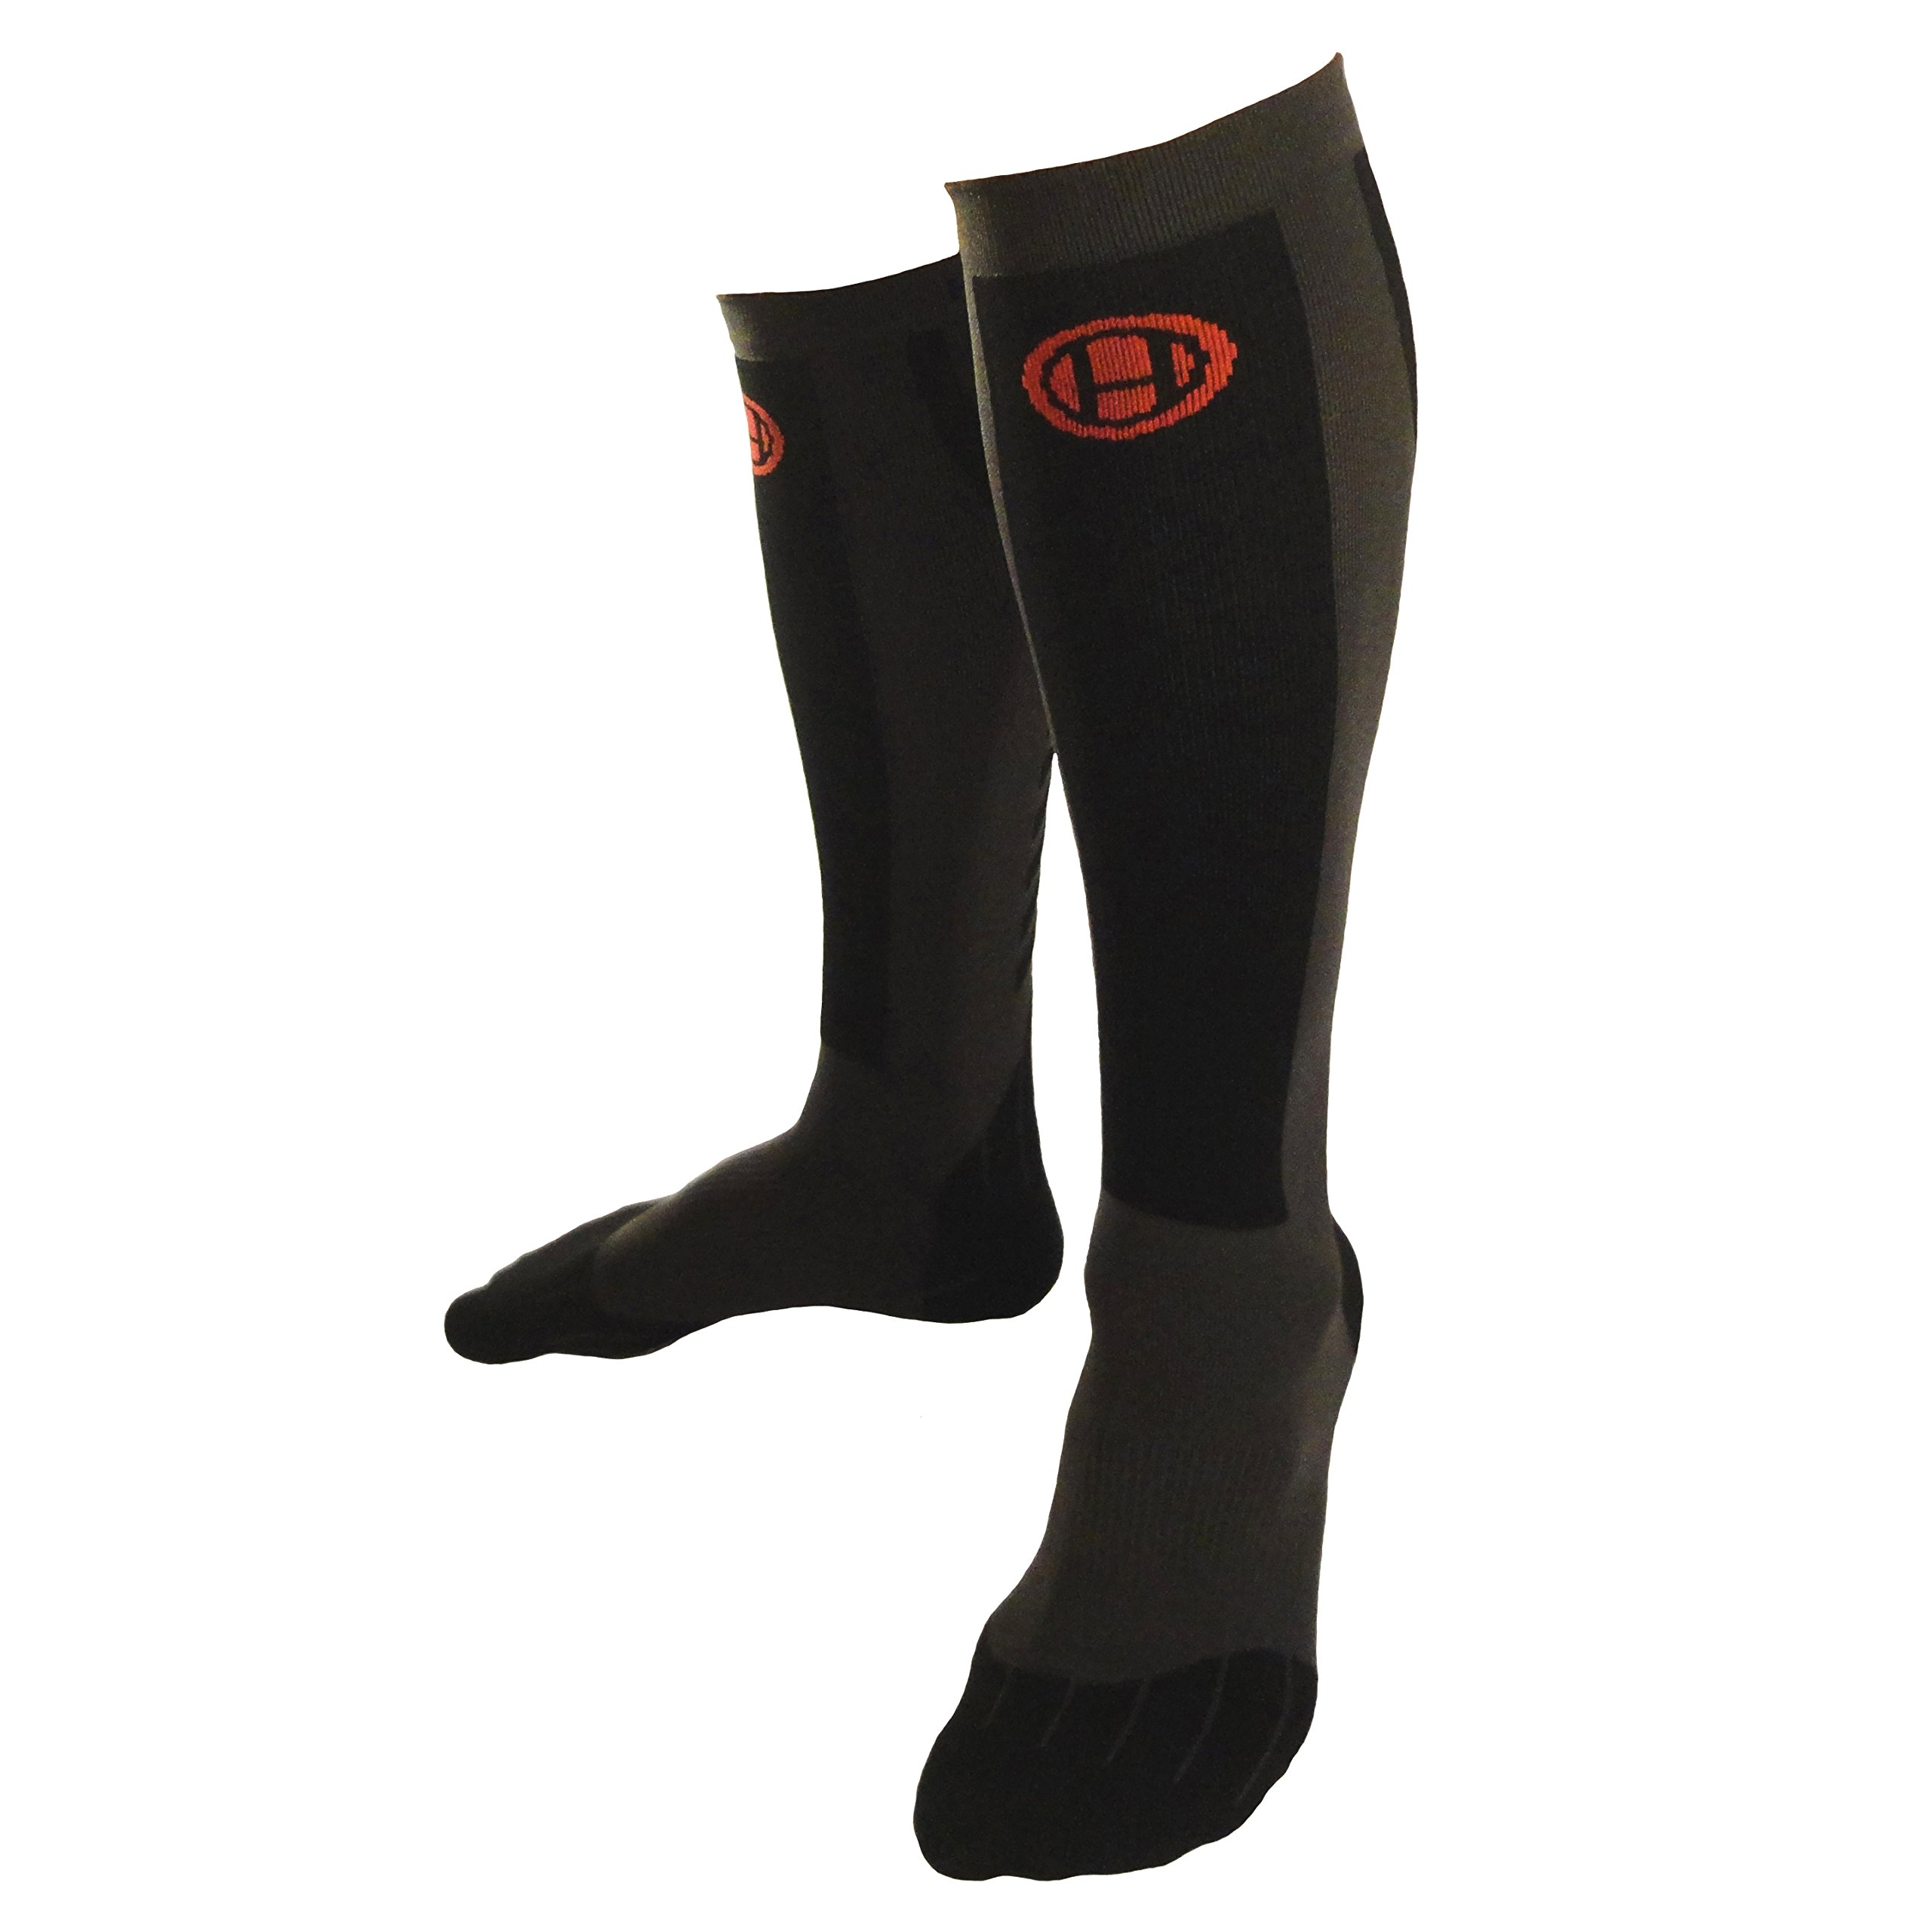 Hoplite High-Performance Compression Socks for running,lifting and OCR